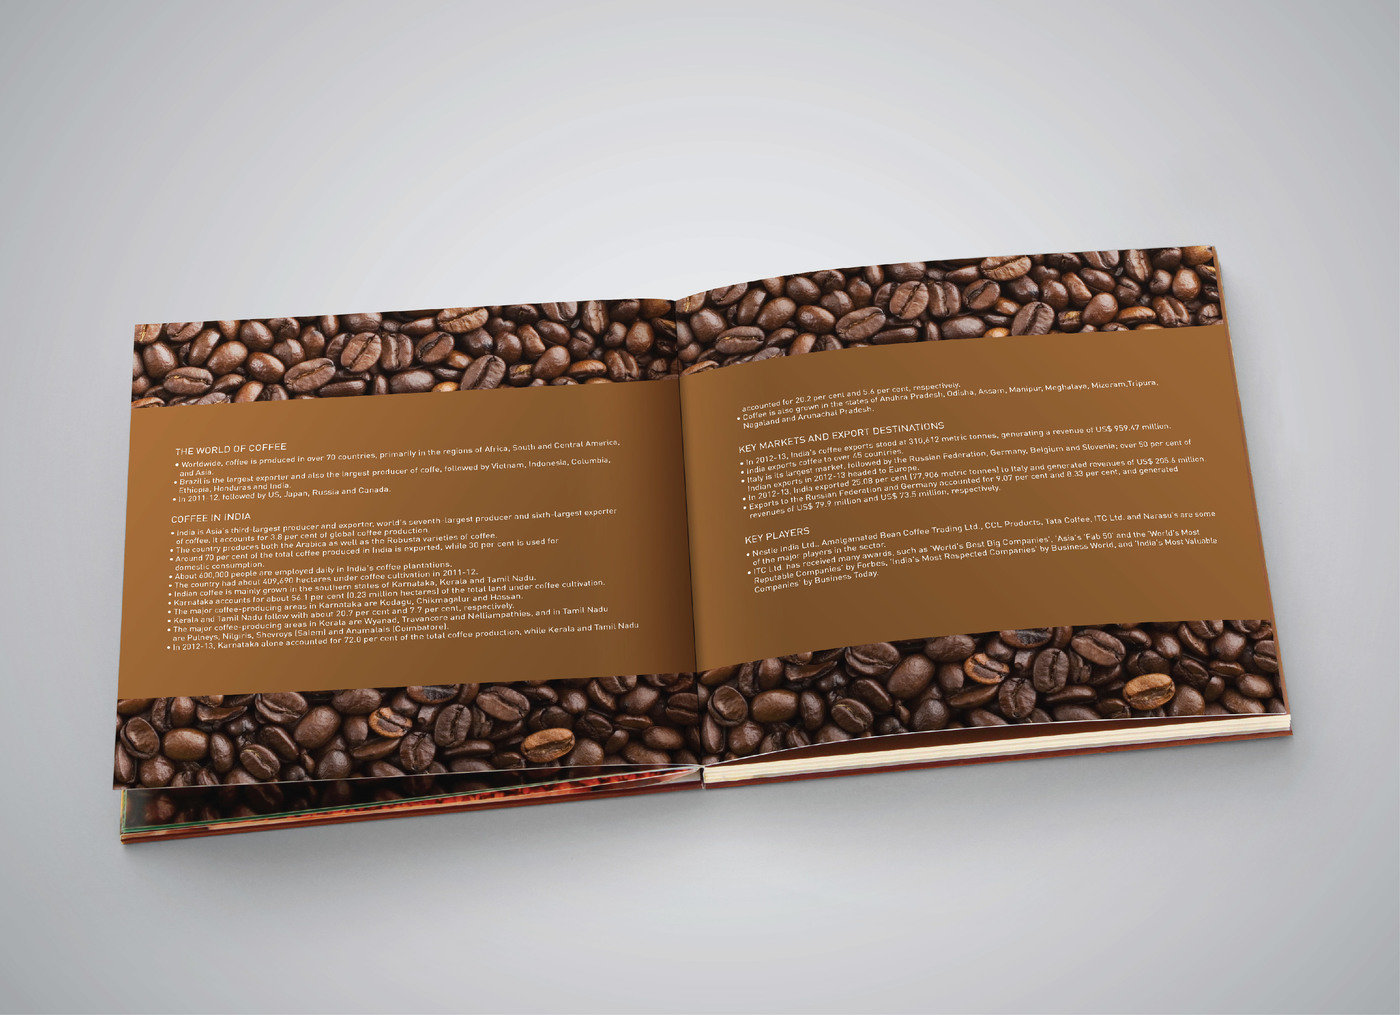 Coffee Table Book By Sumit Vashisth At Coroflot Com